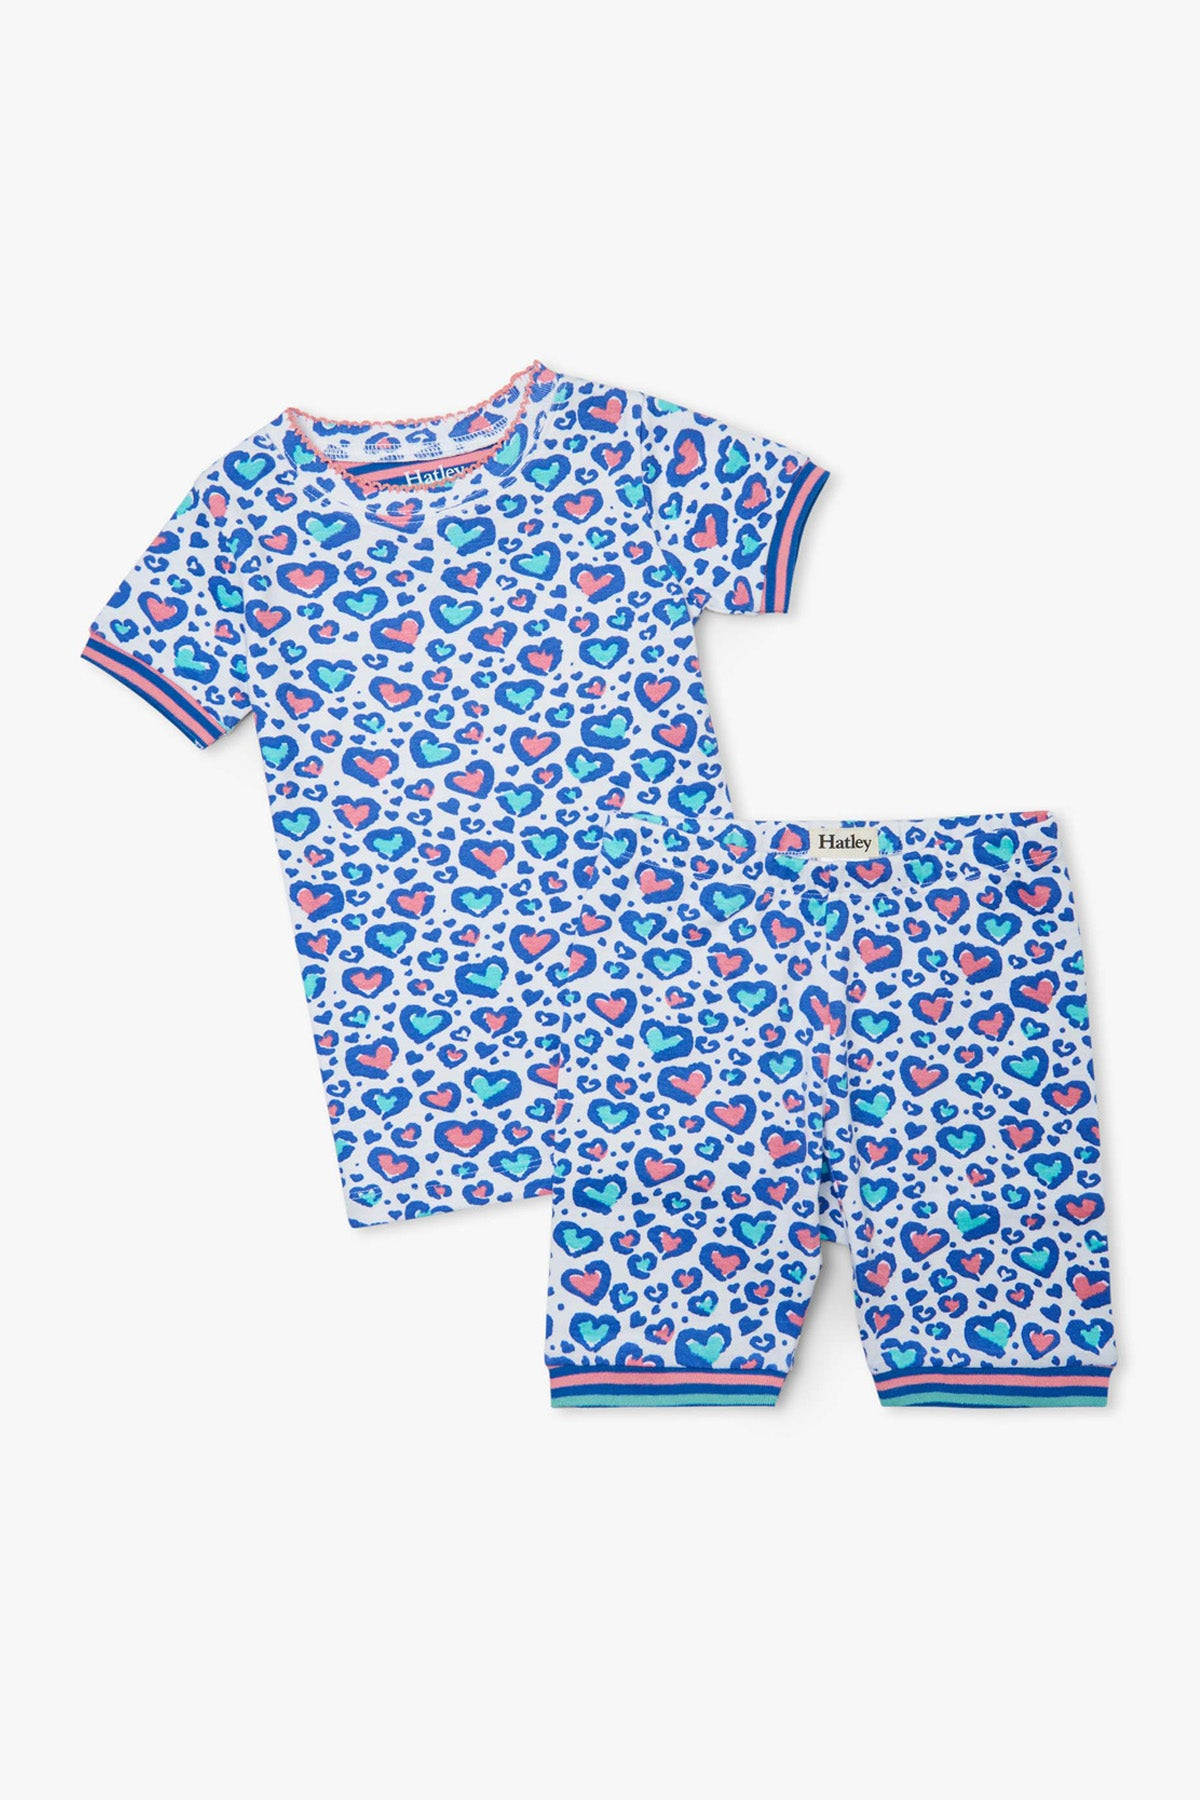 Hatley Cheetah Hearts Girls Pajama Set